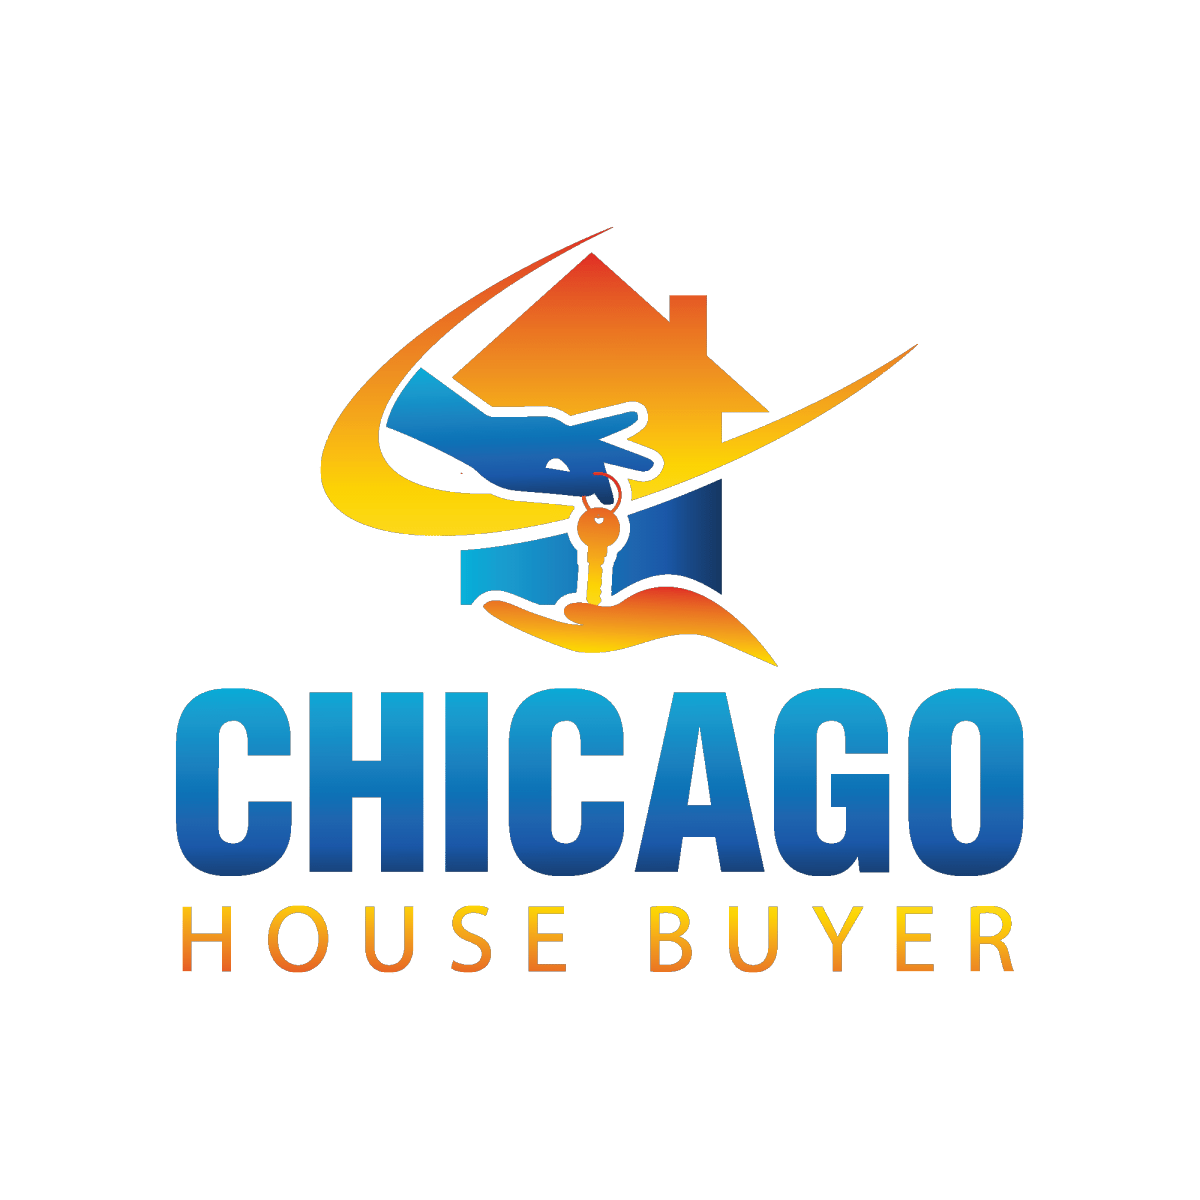 Chicago House Buyer logo